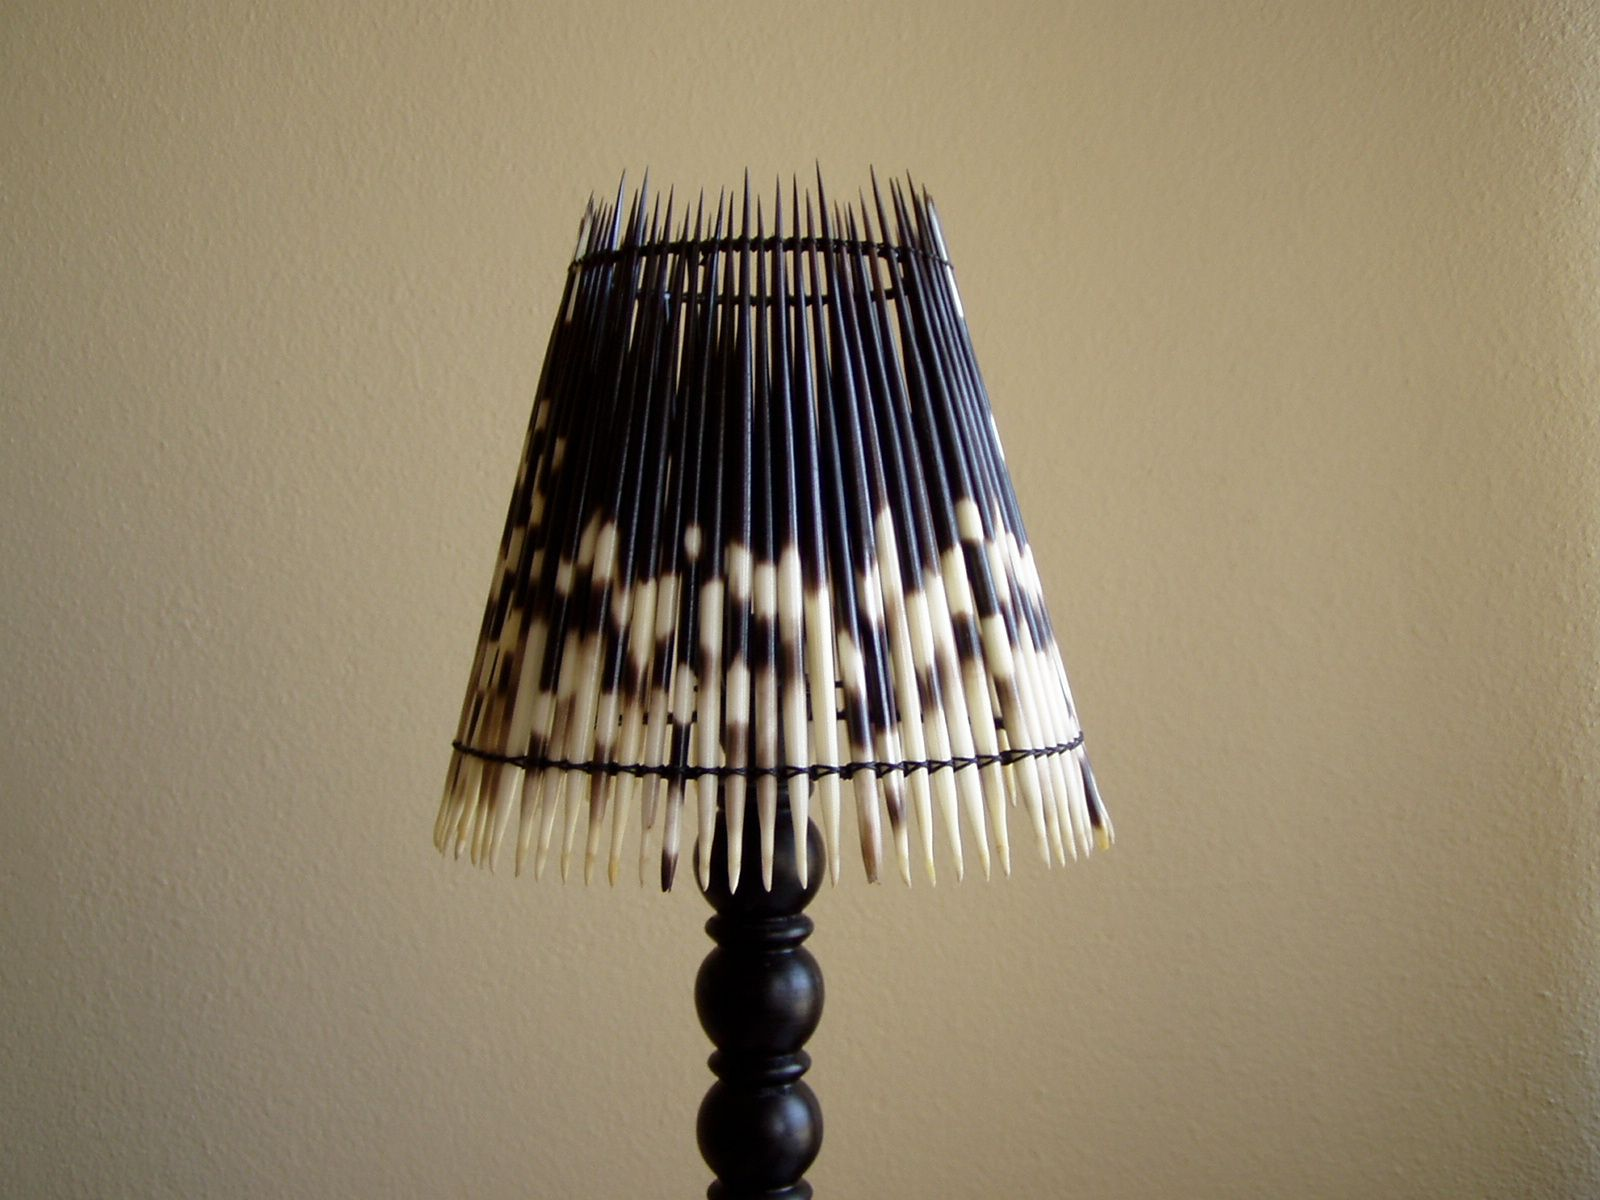 Lamps porcupine quill lamp shade available online or from sue lamps porcupine quill lamp shade available online or from sue riley homewares aloadofball Choice Image